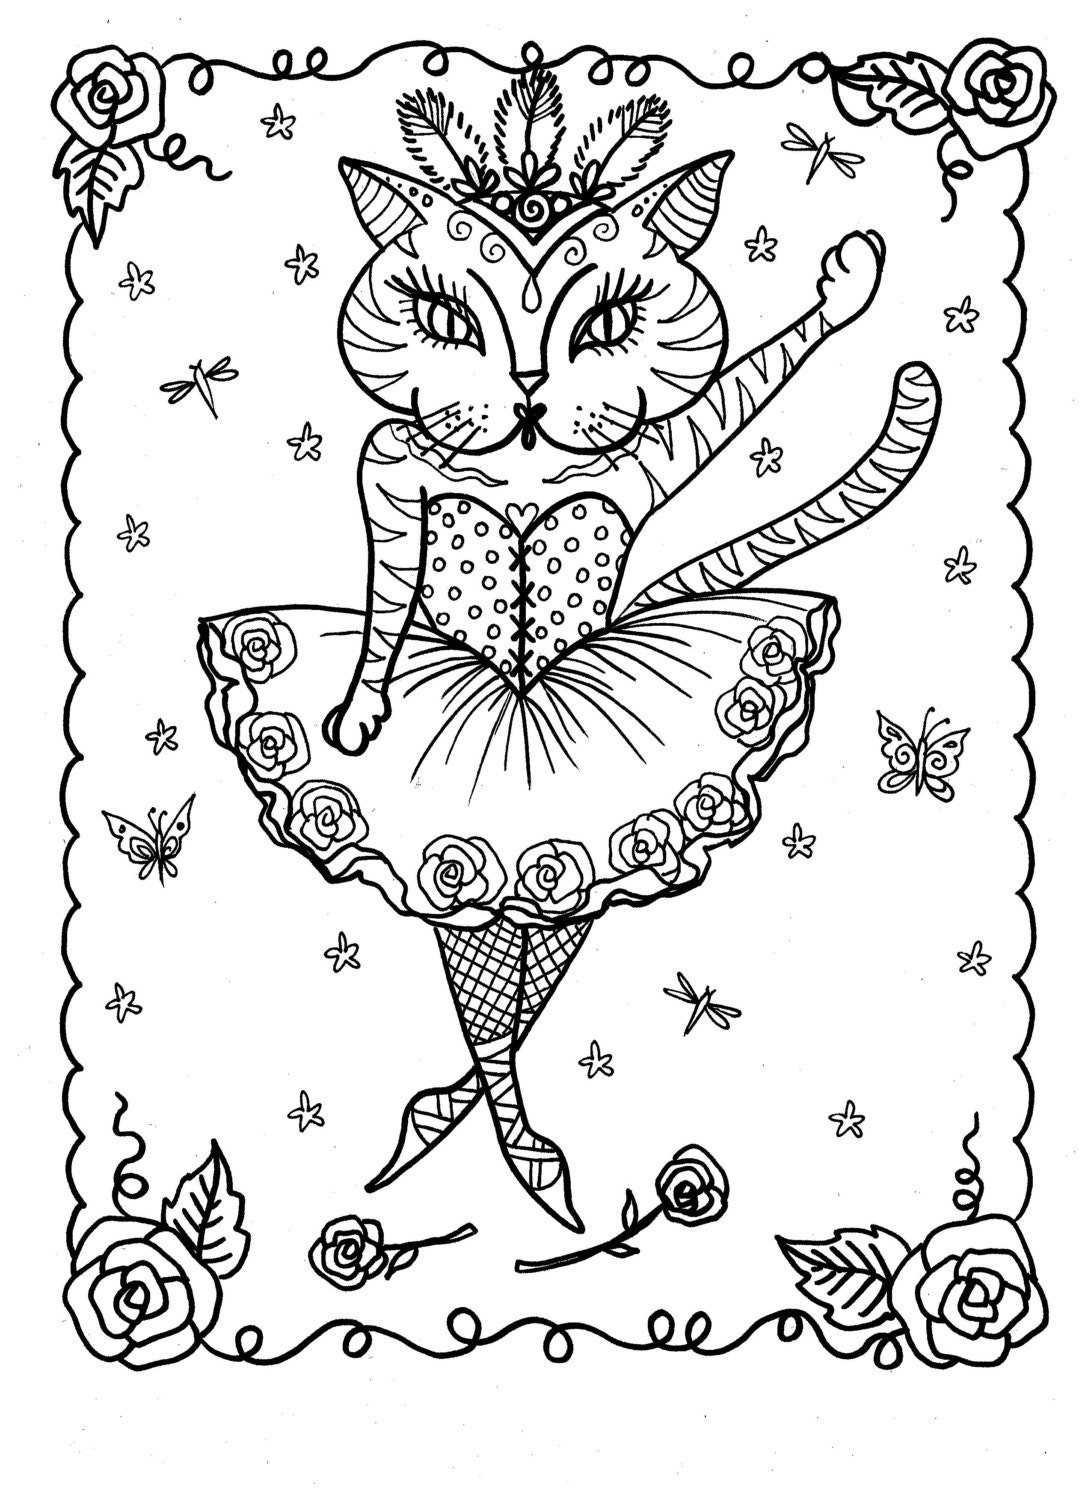 adult coloring pages download | 5 Pages Instant Download Coloring for Adults by ChubbyMermaid